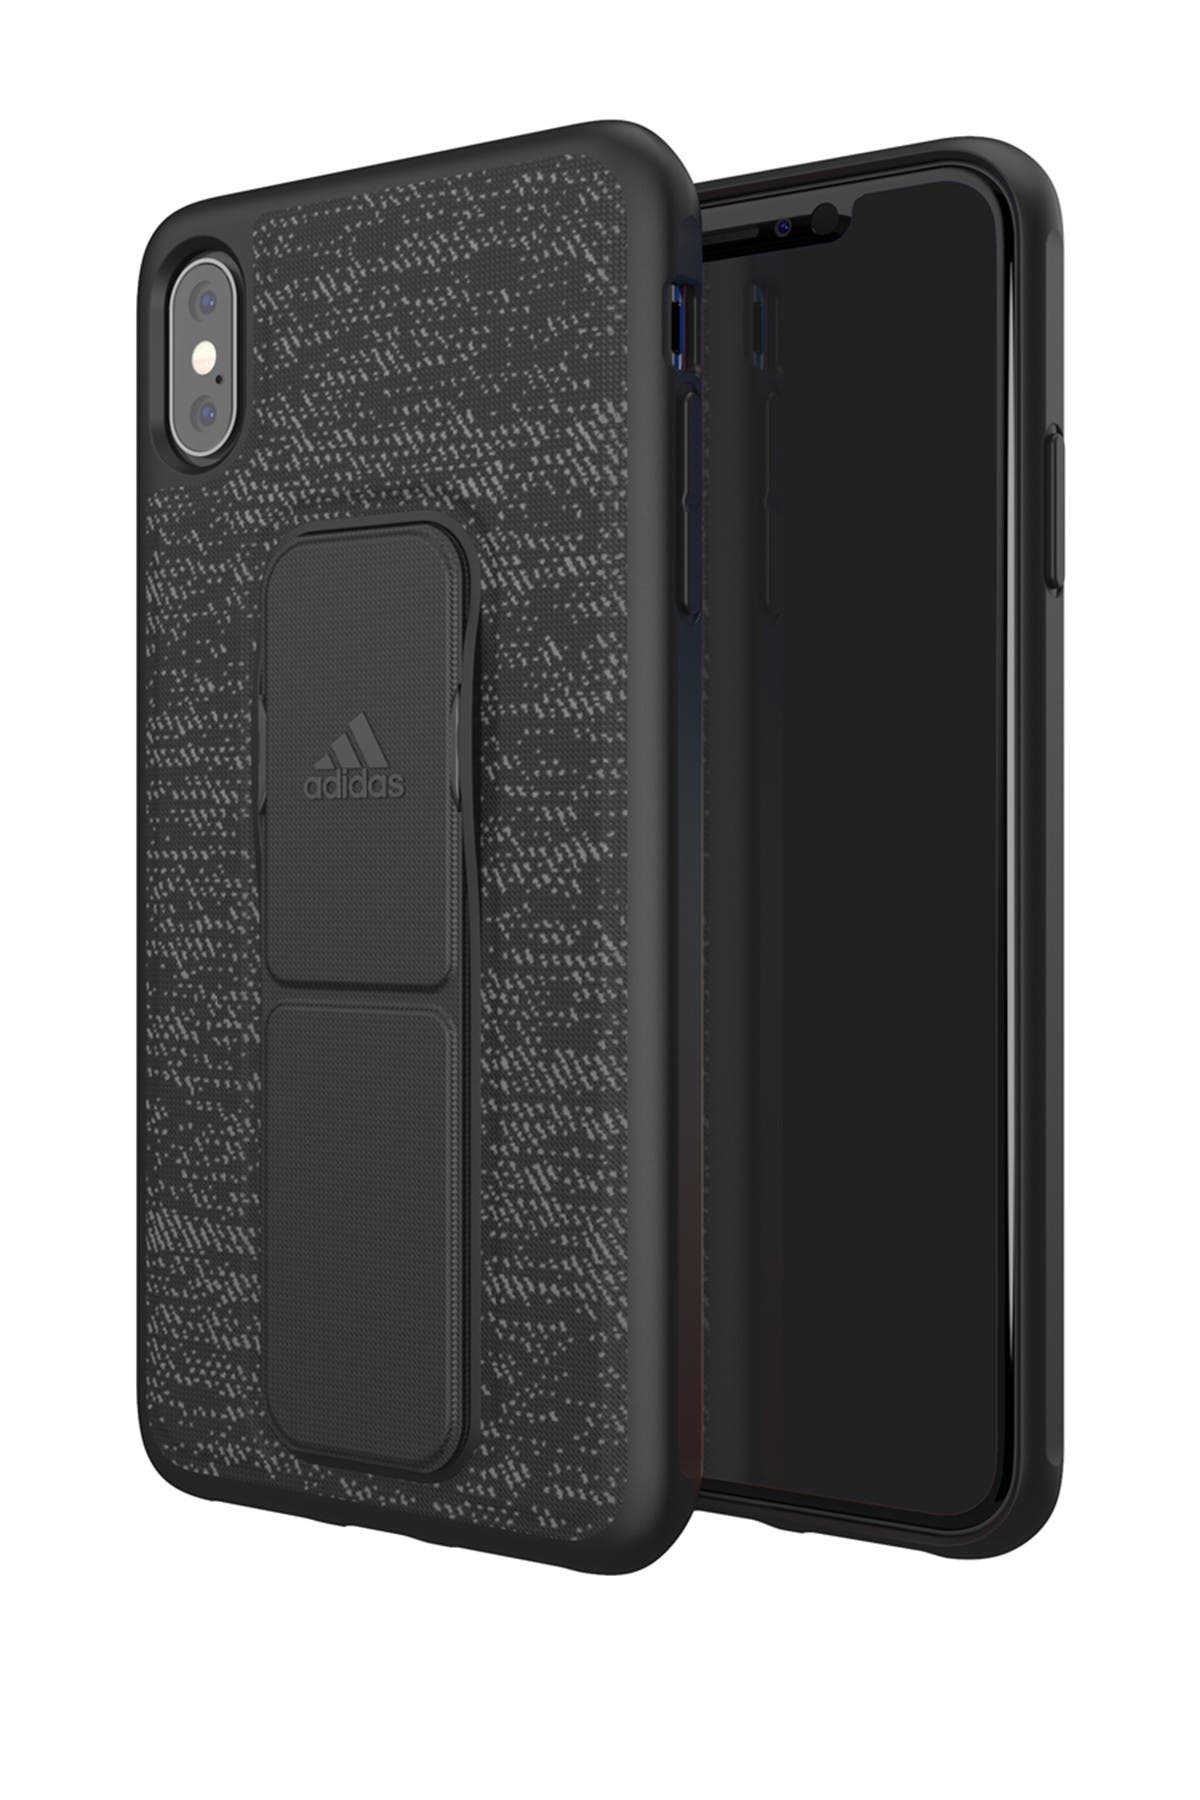 Image of adidas Black Grip iPhone XS MAX Case